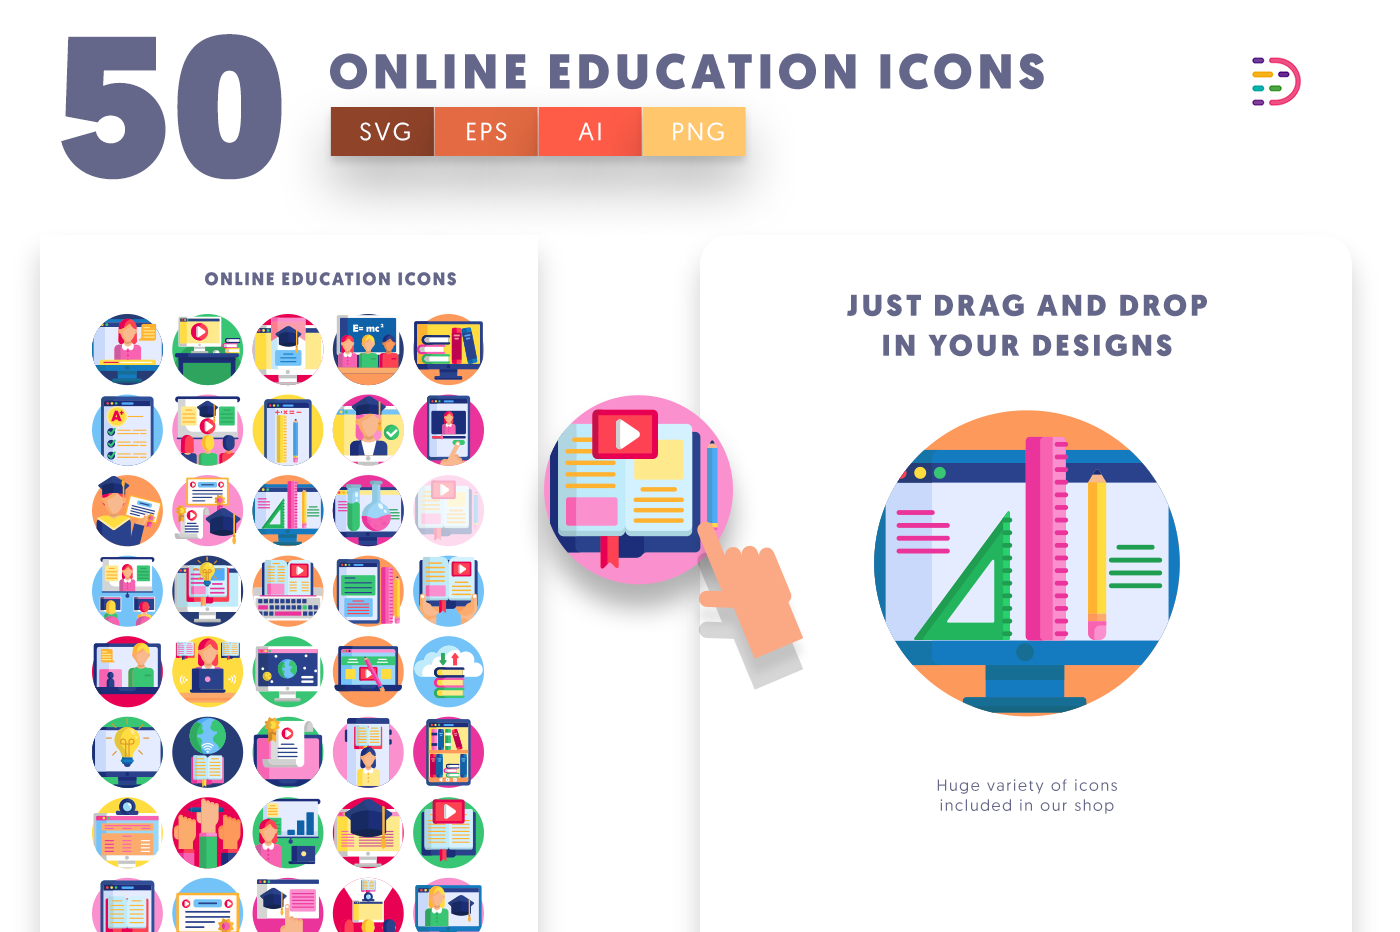 Drag and drop vector 50 Online Education Icons